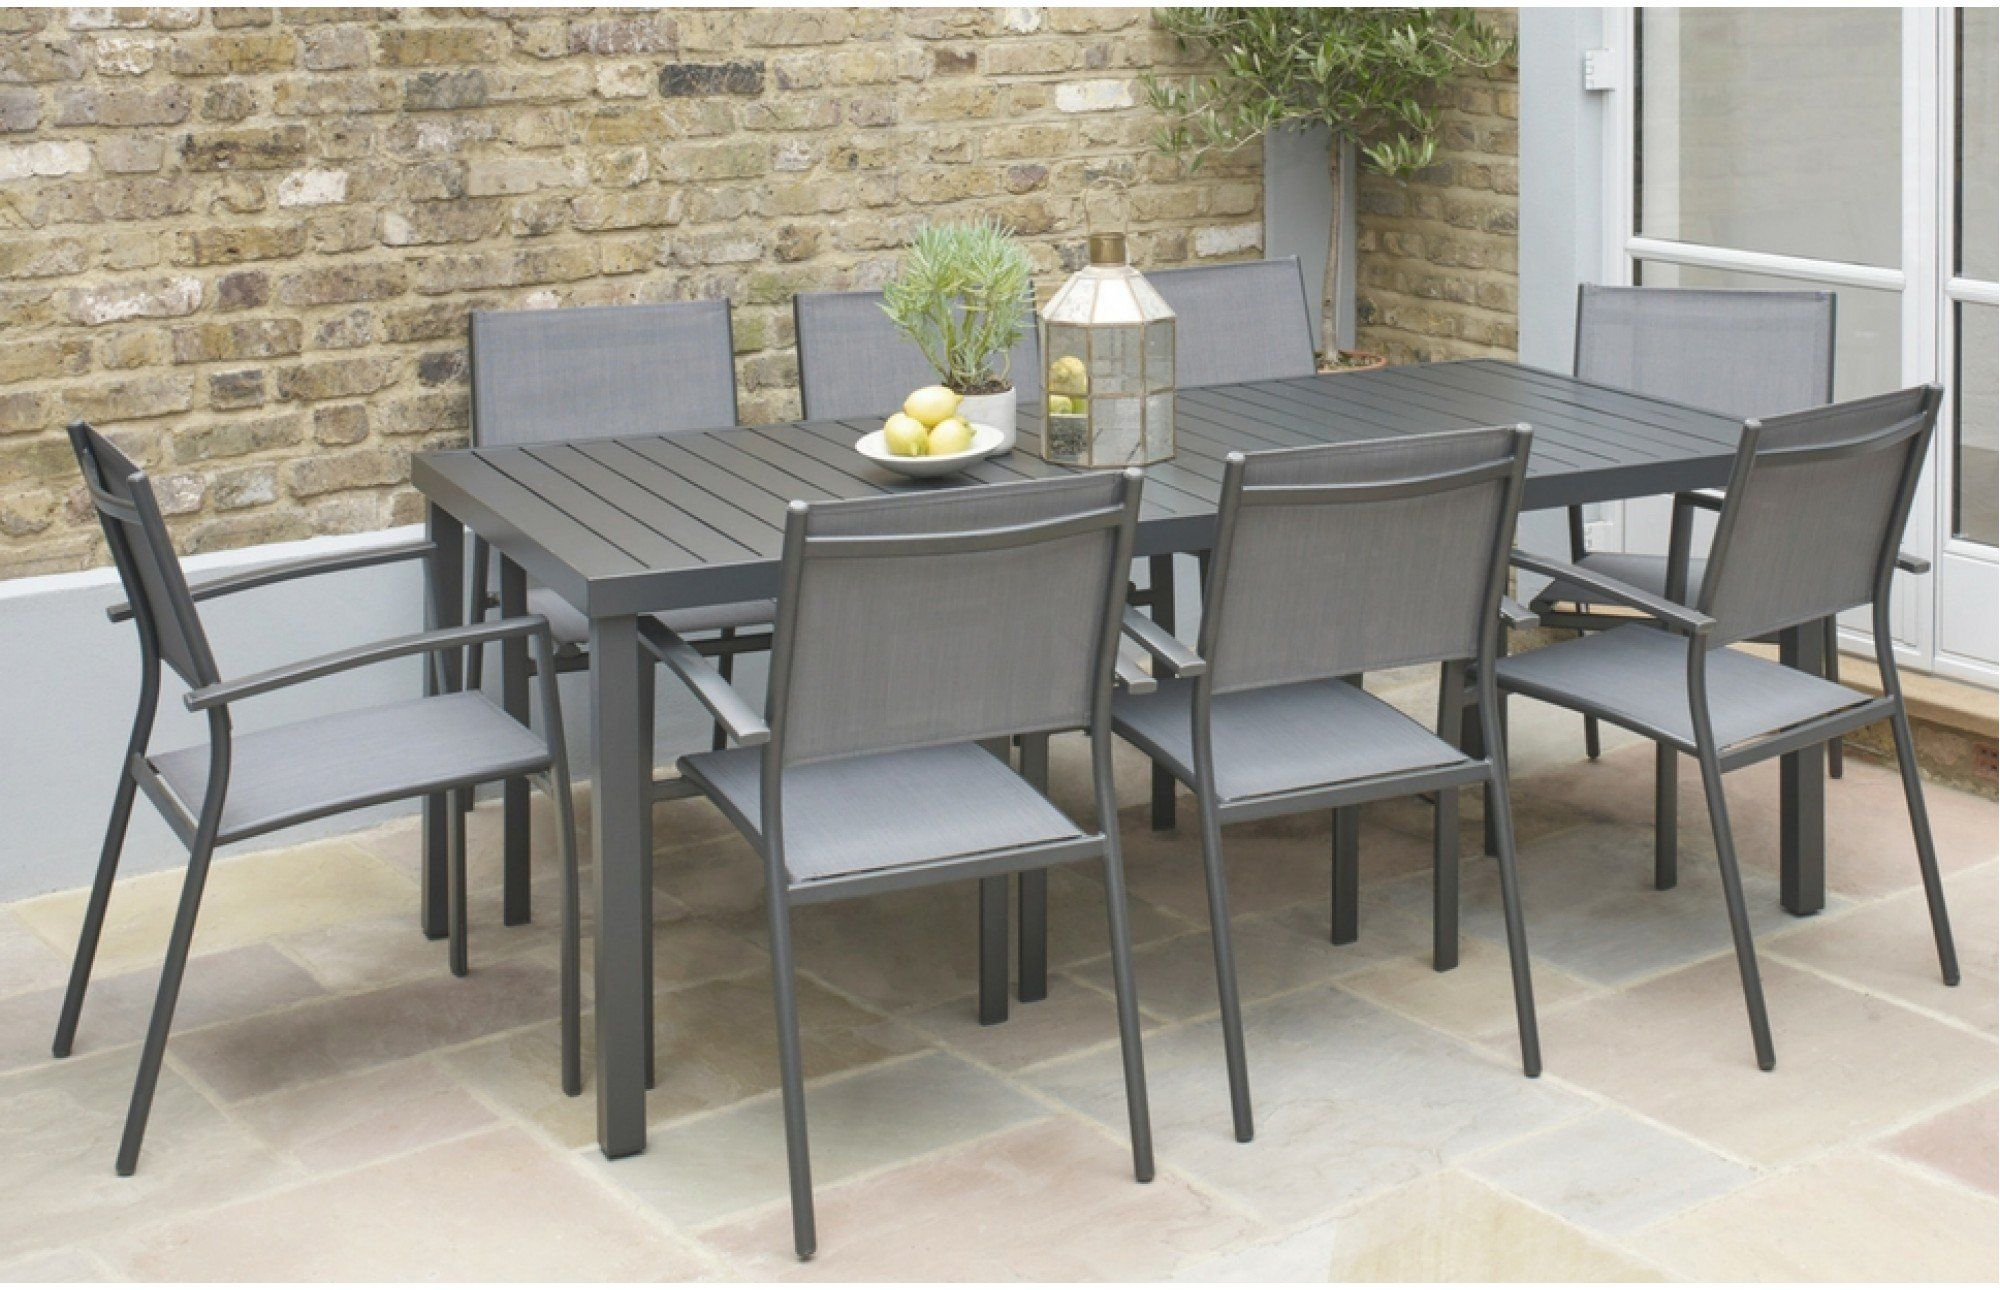 Browse Our Range Of Patio Dining Furniture Such As The Havana 8 Seater Set With